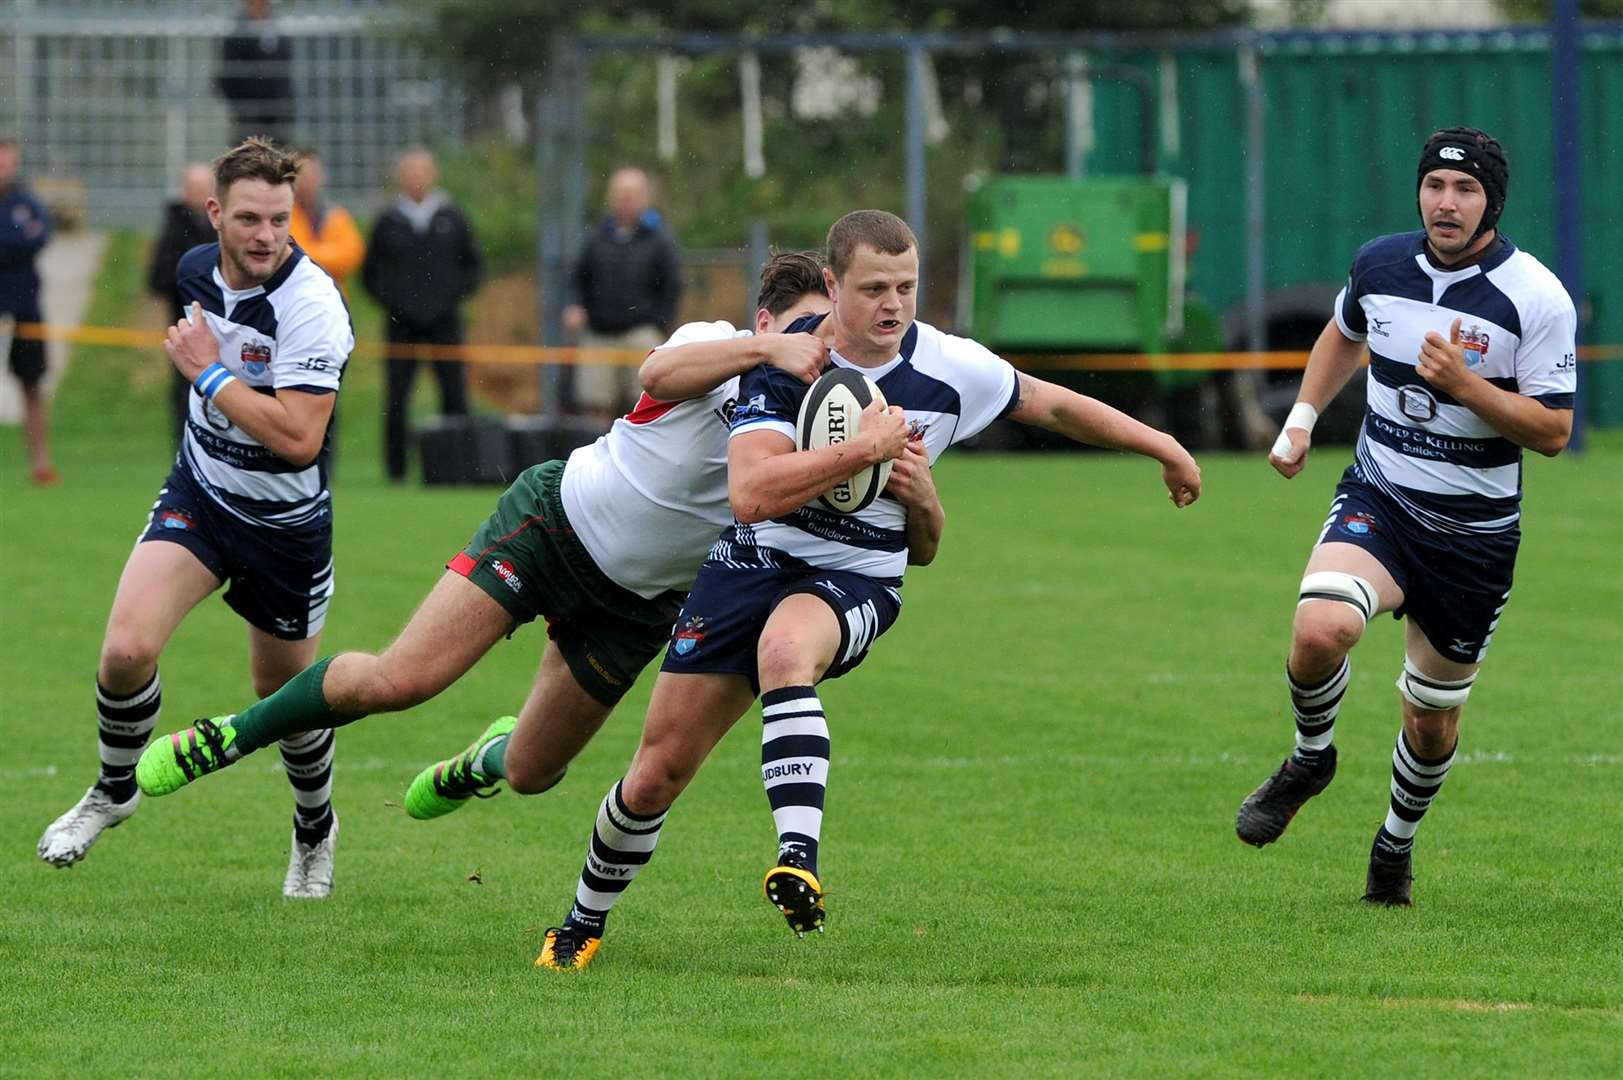 CRUCIAL SCORE: Dan Harding, pictured earlier in the season, got Sudbury's first of two late tries at Fullerians